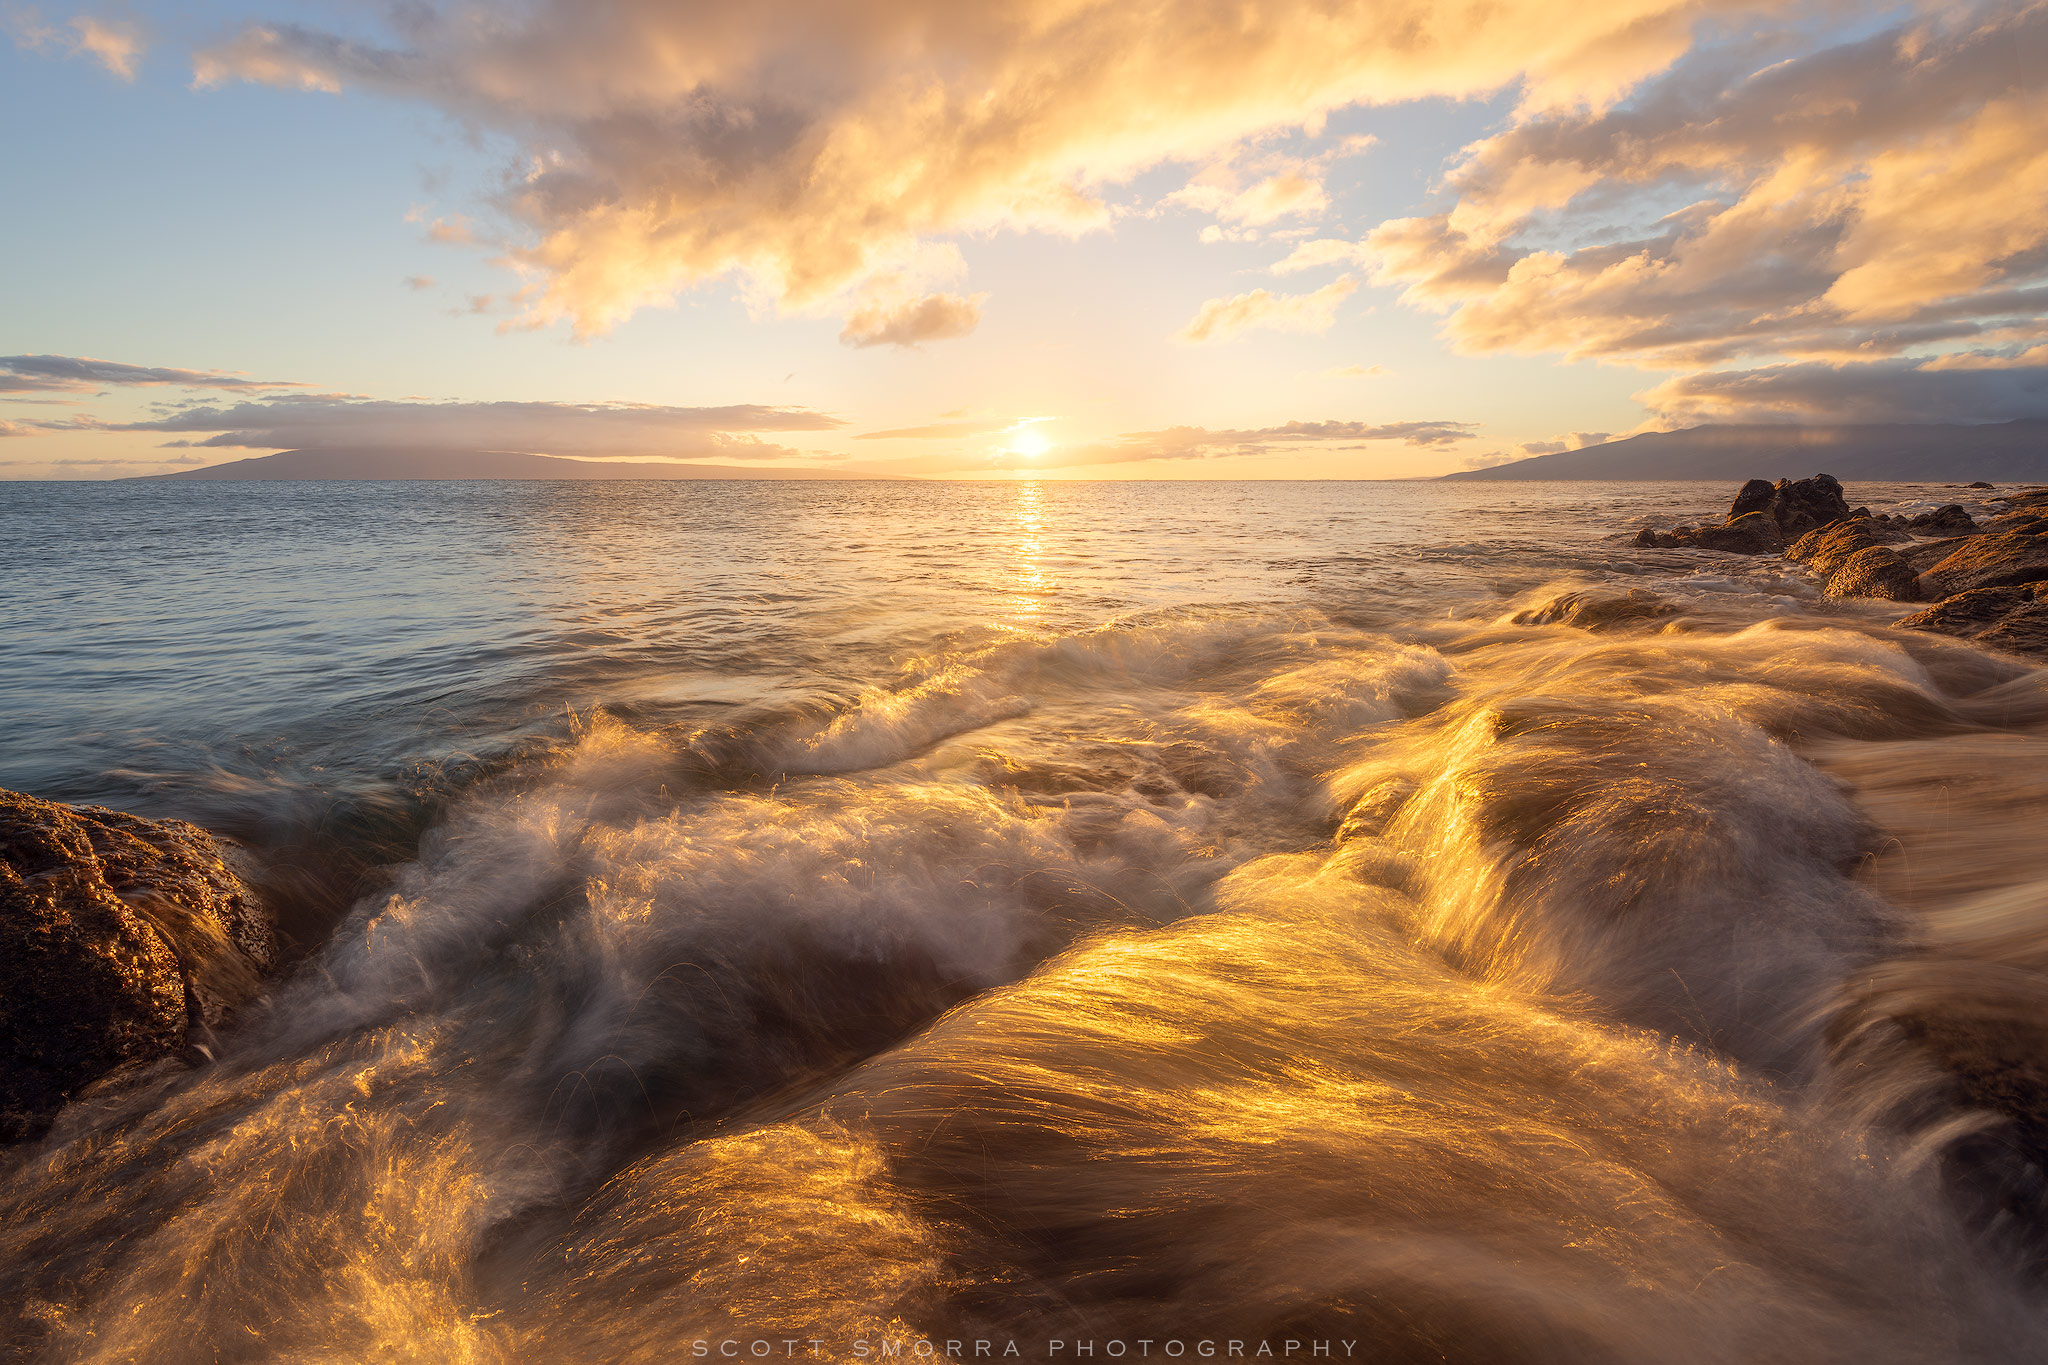 Fine Art Limited Edition of 100 - Golden sunlight illuminates rushing water and waves near Kapalua, Maui, Hawaii.  This image...